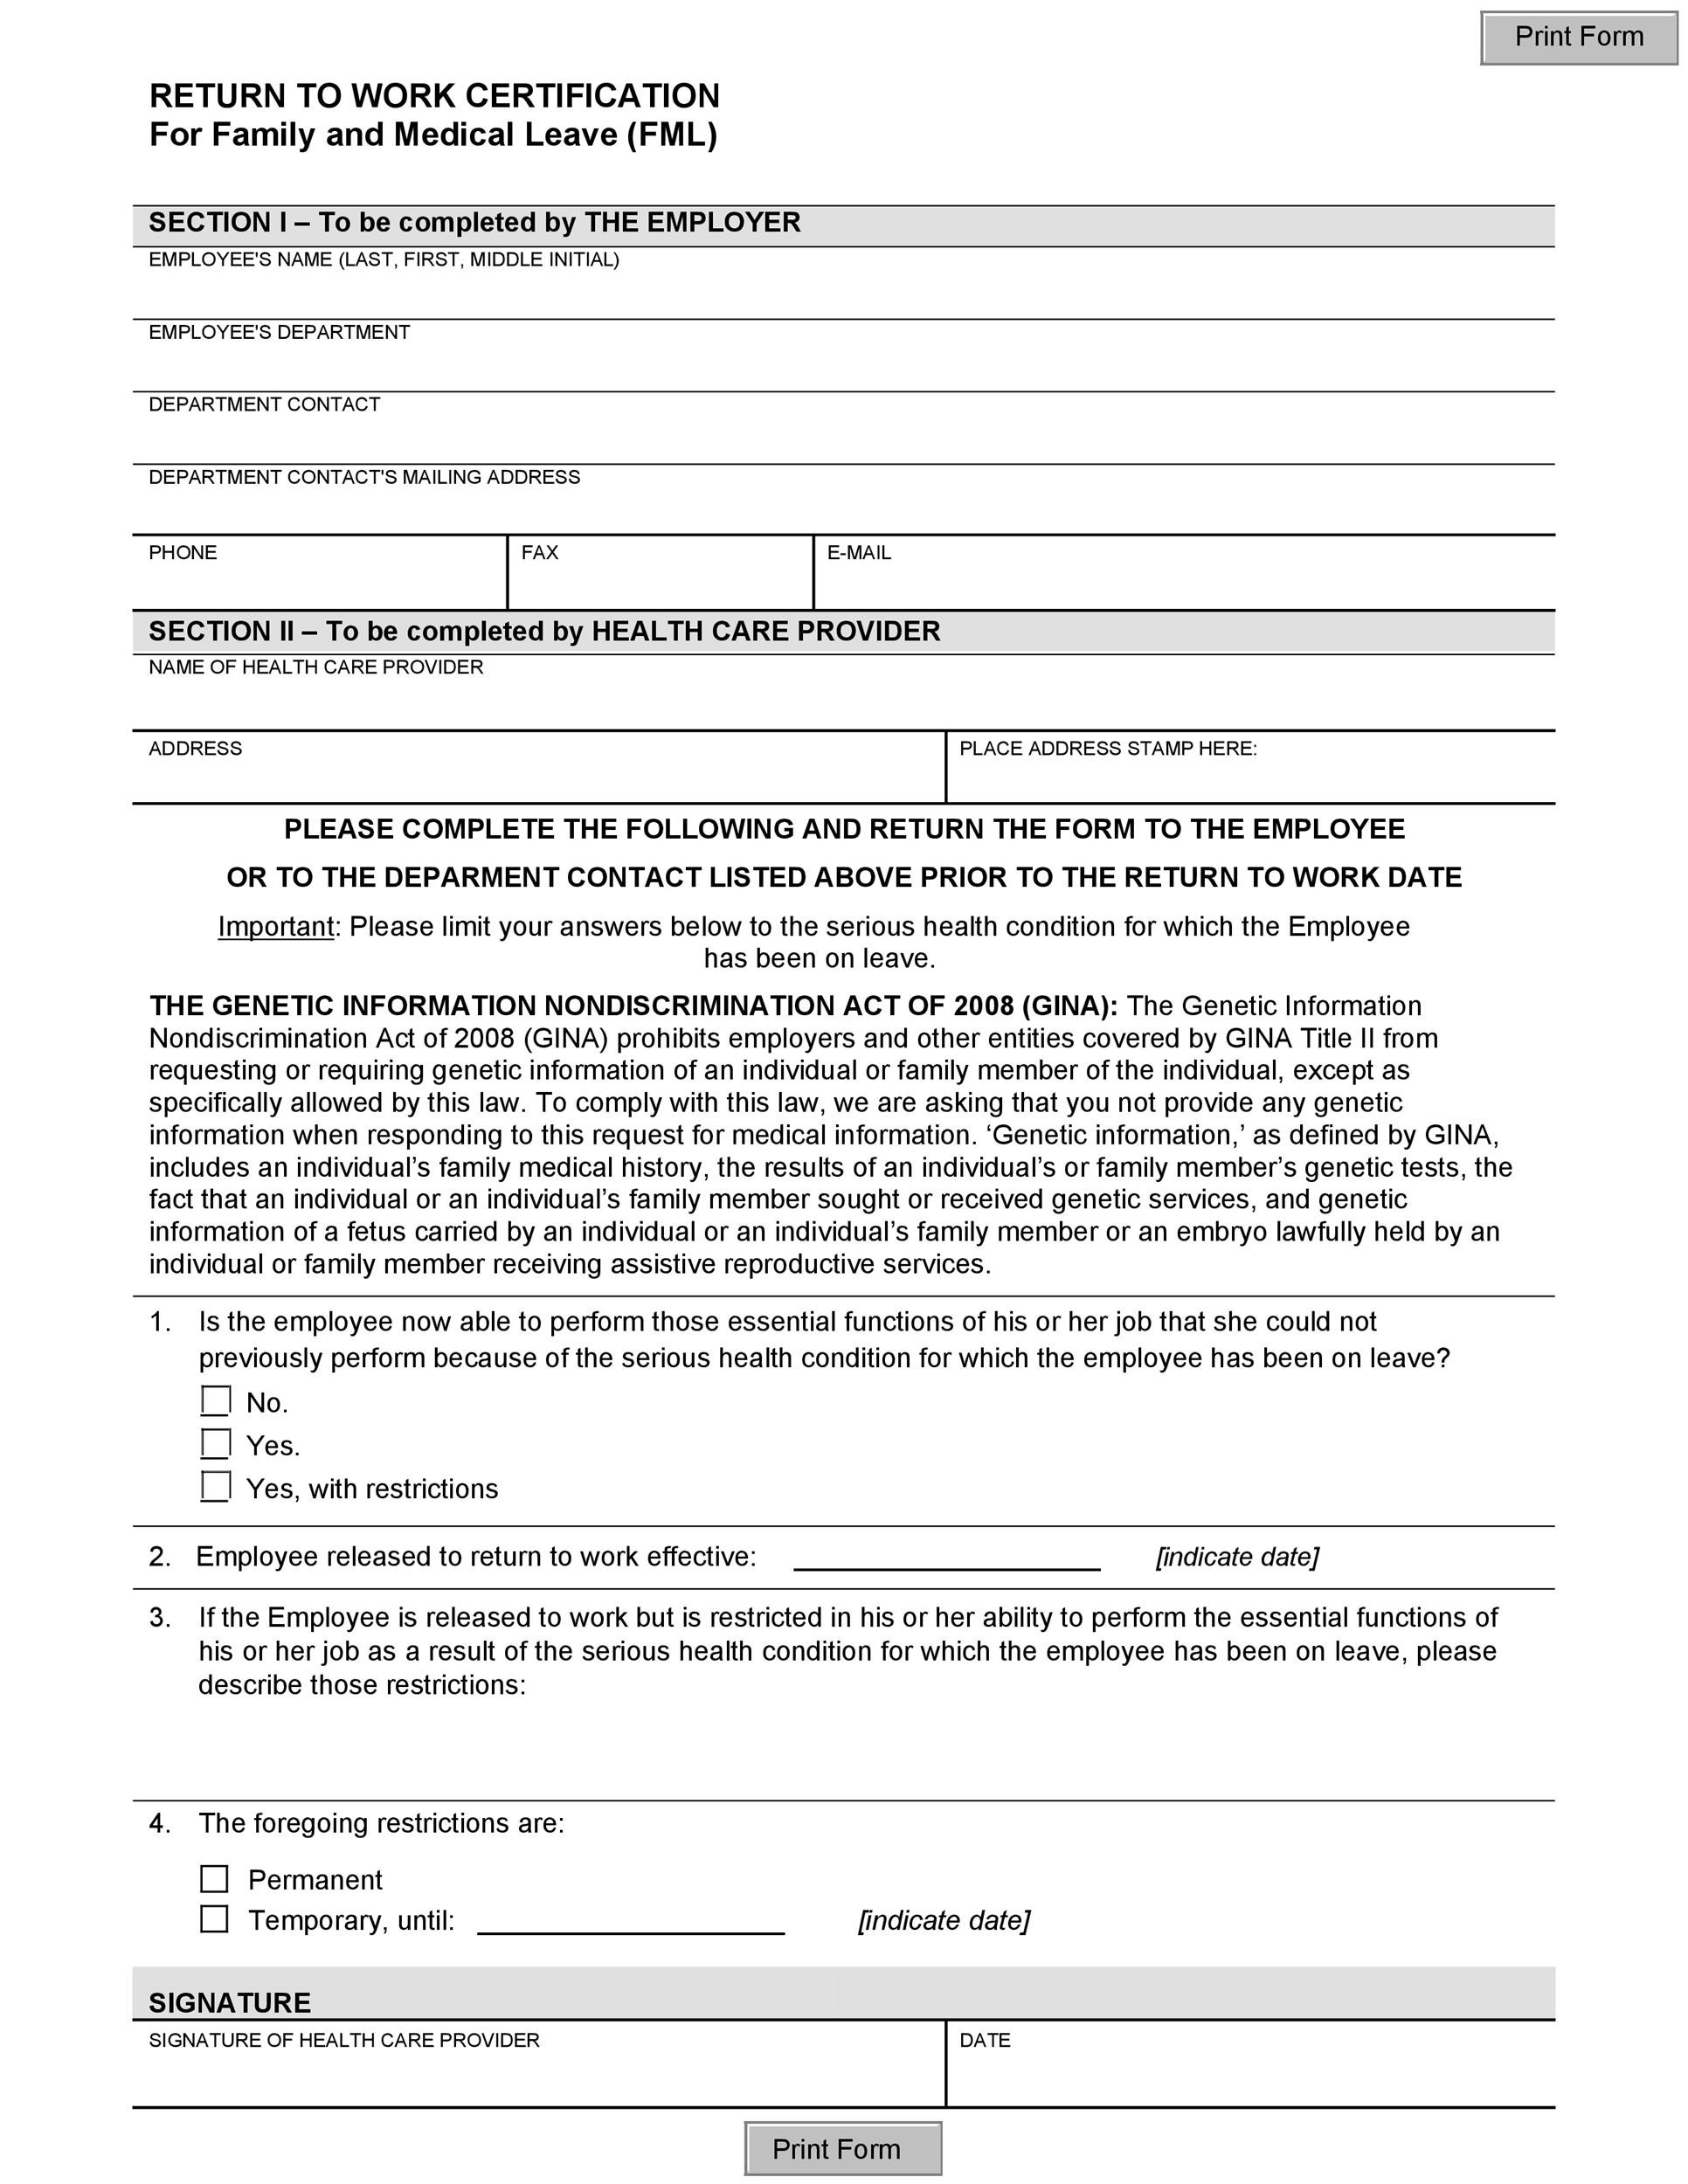 Free return to work form 22